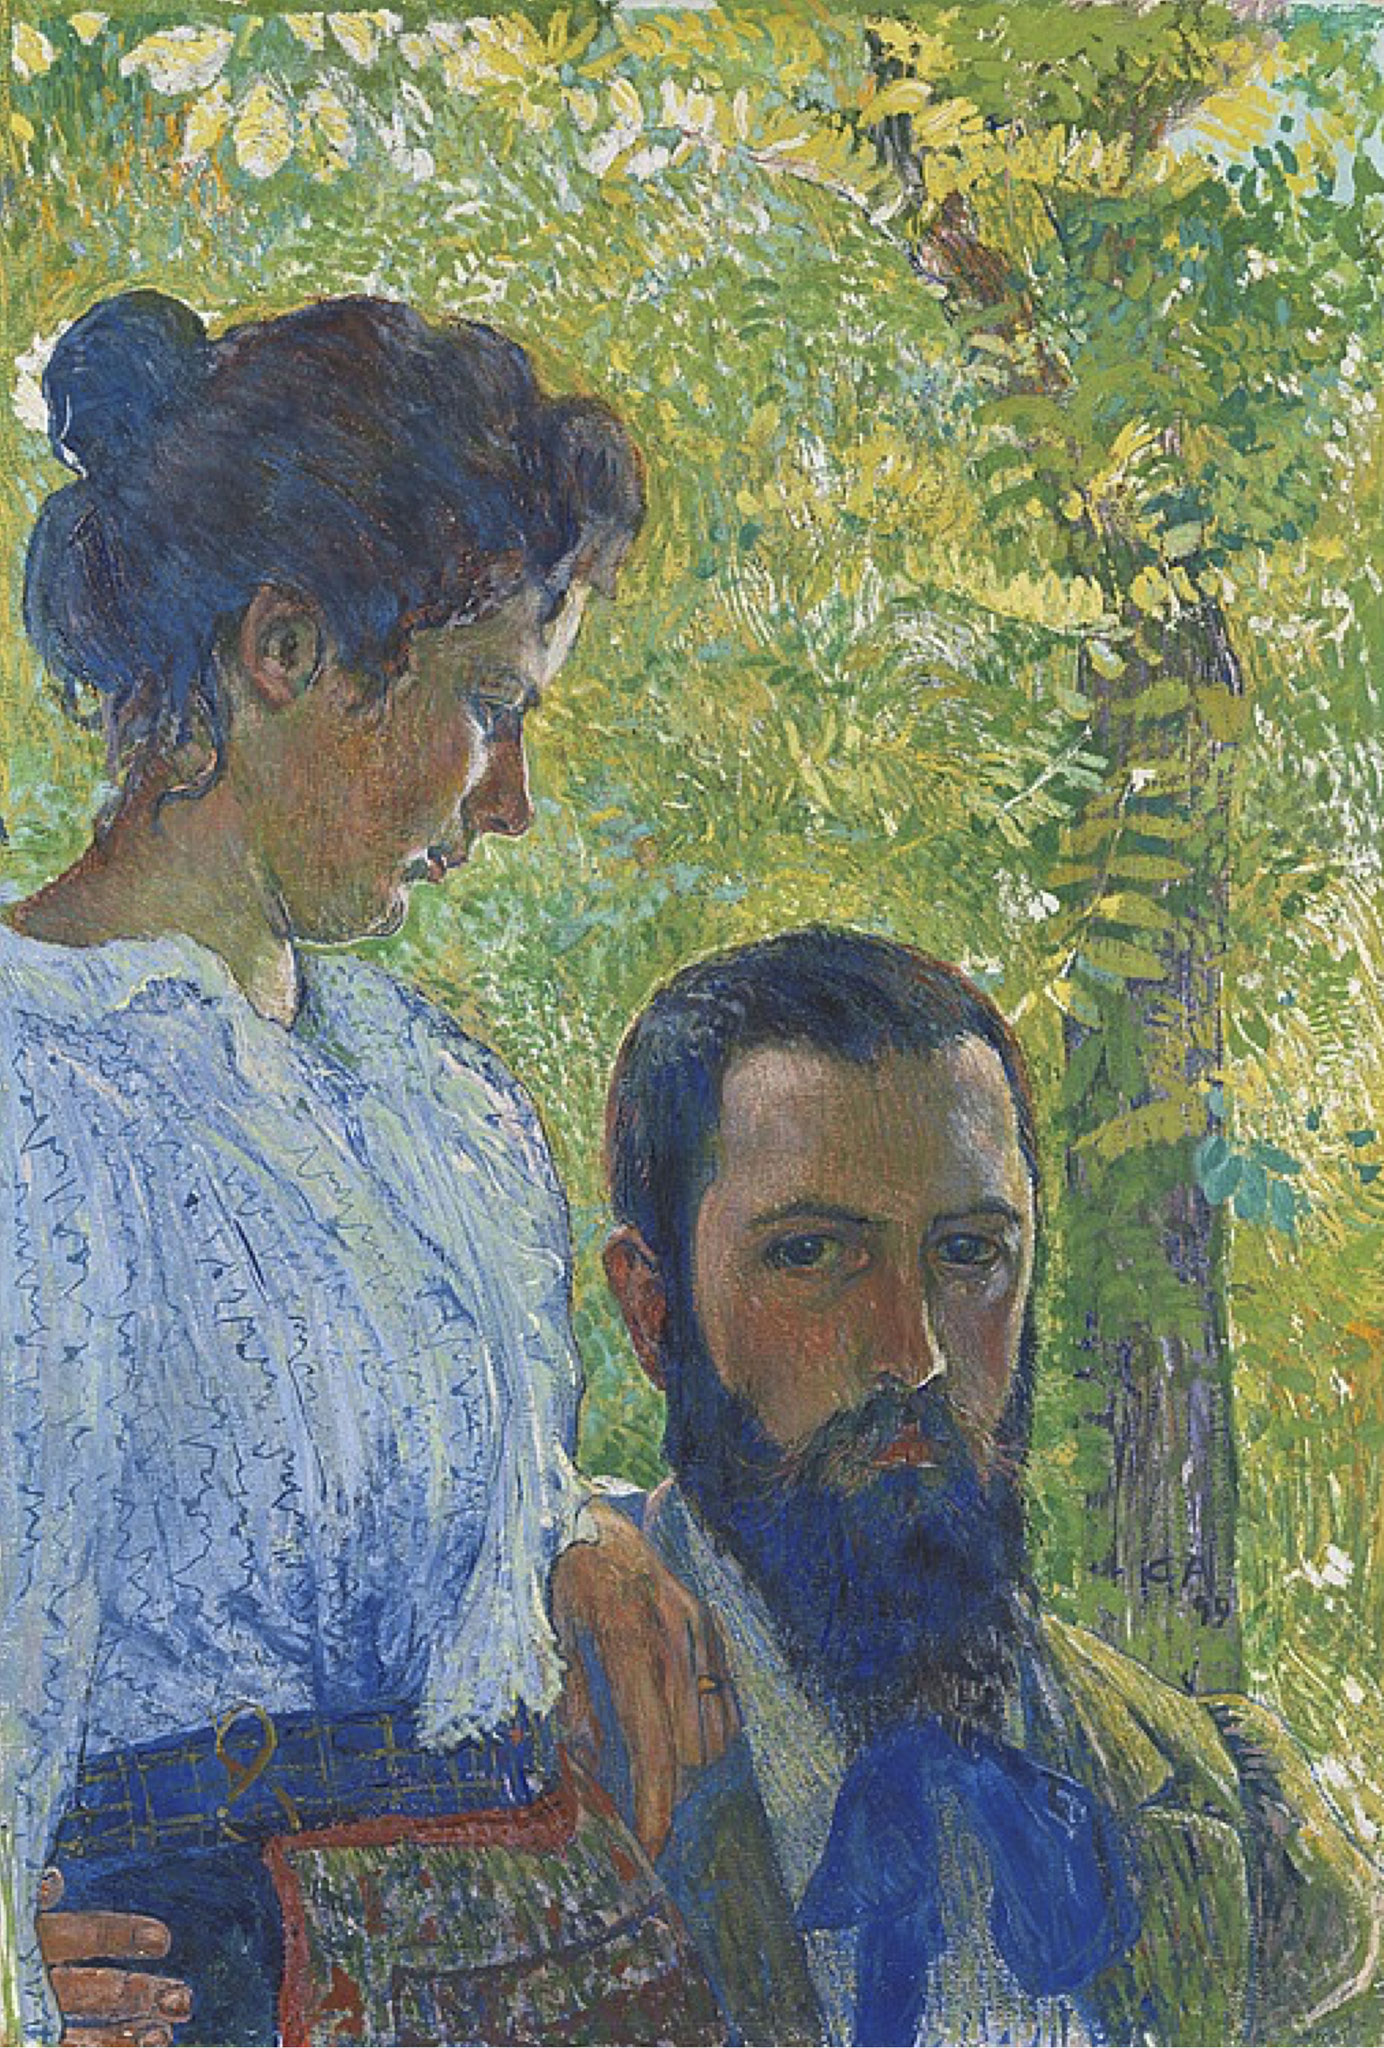 Cuno Amiet, Self-portrait with Wife, 1899 - exhibited in London, 1926